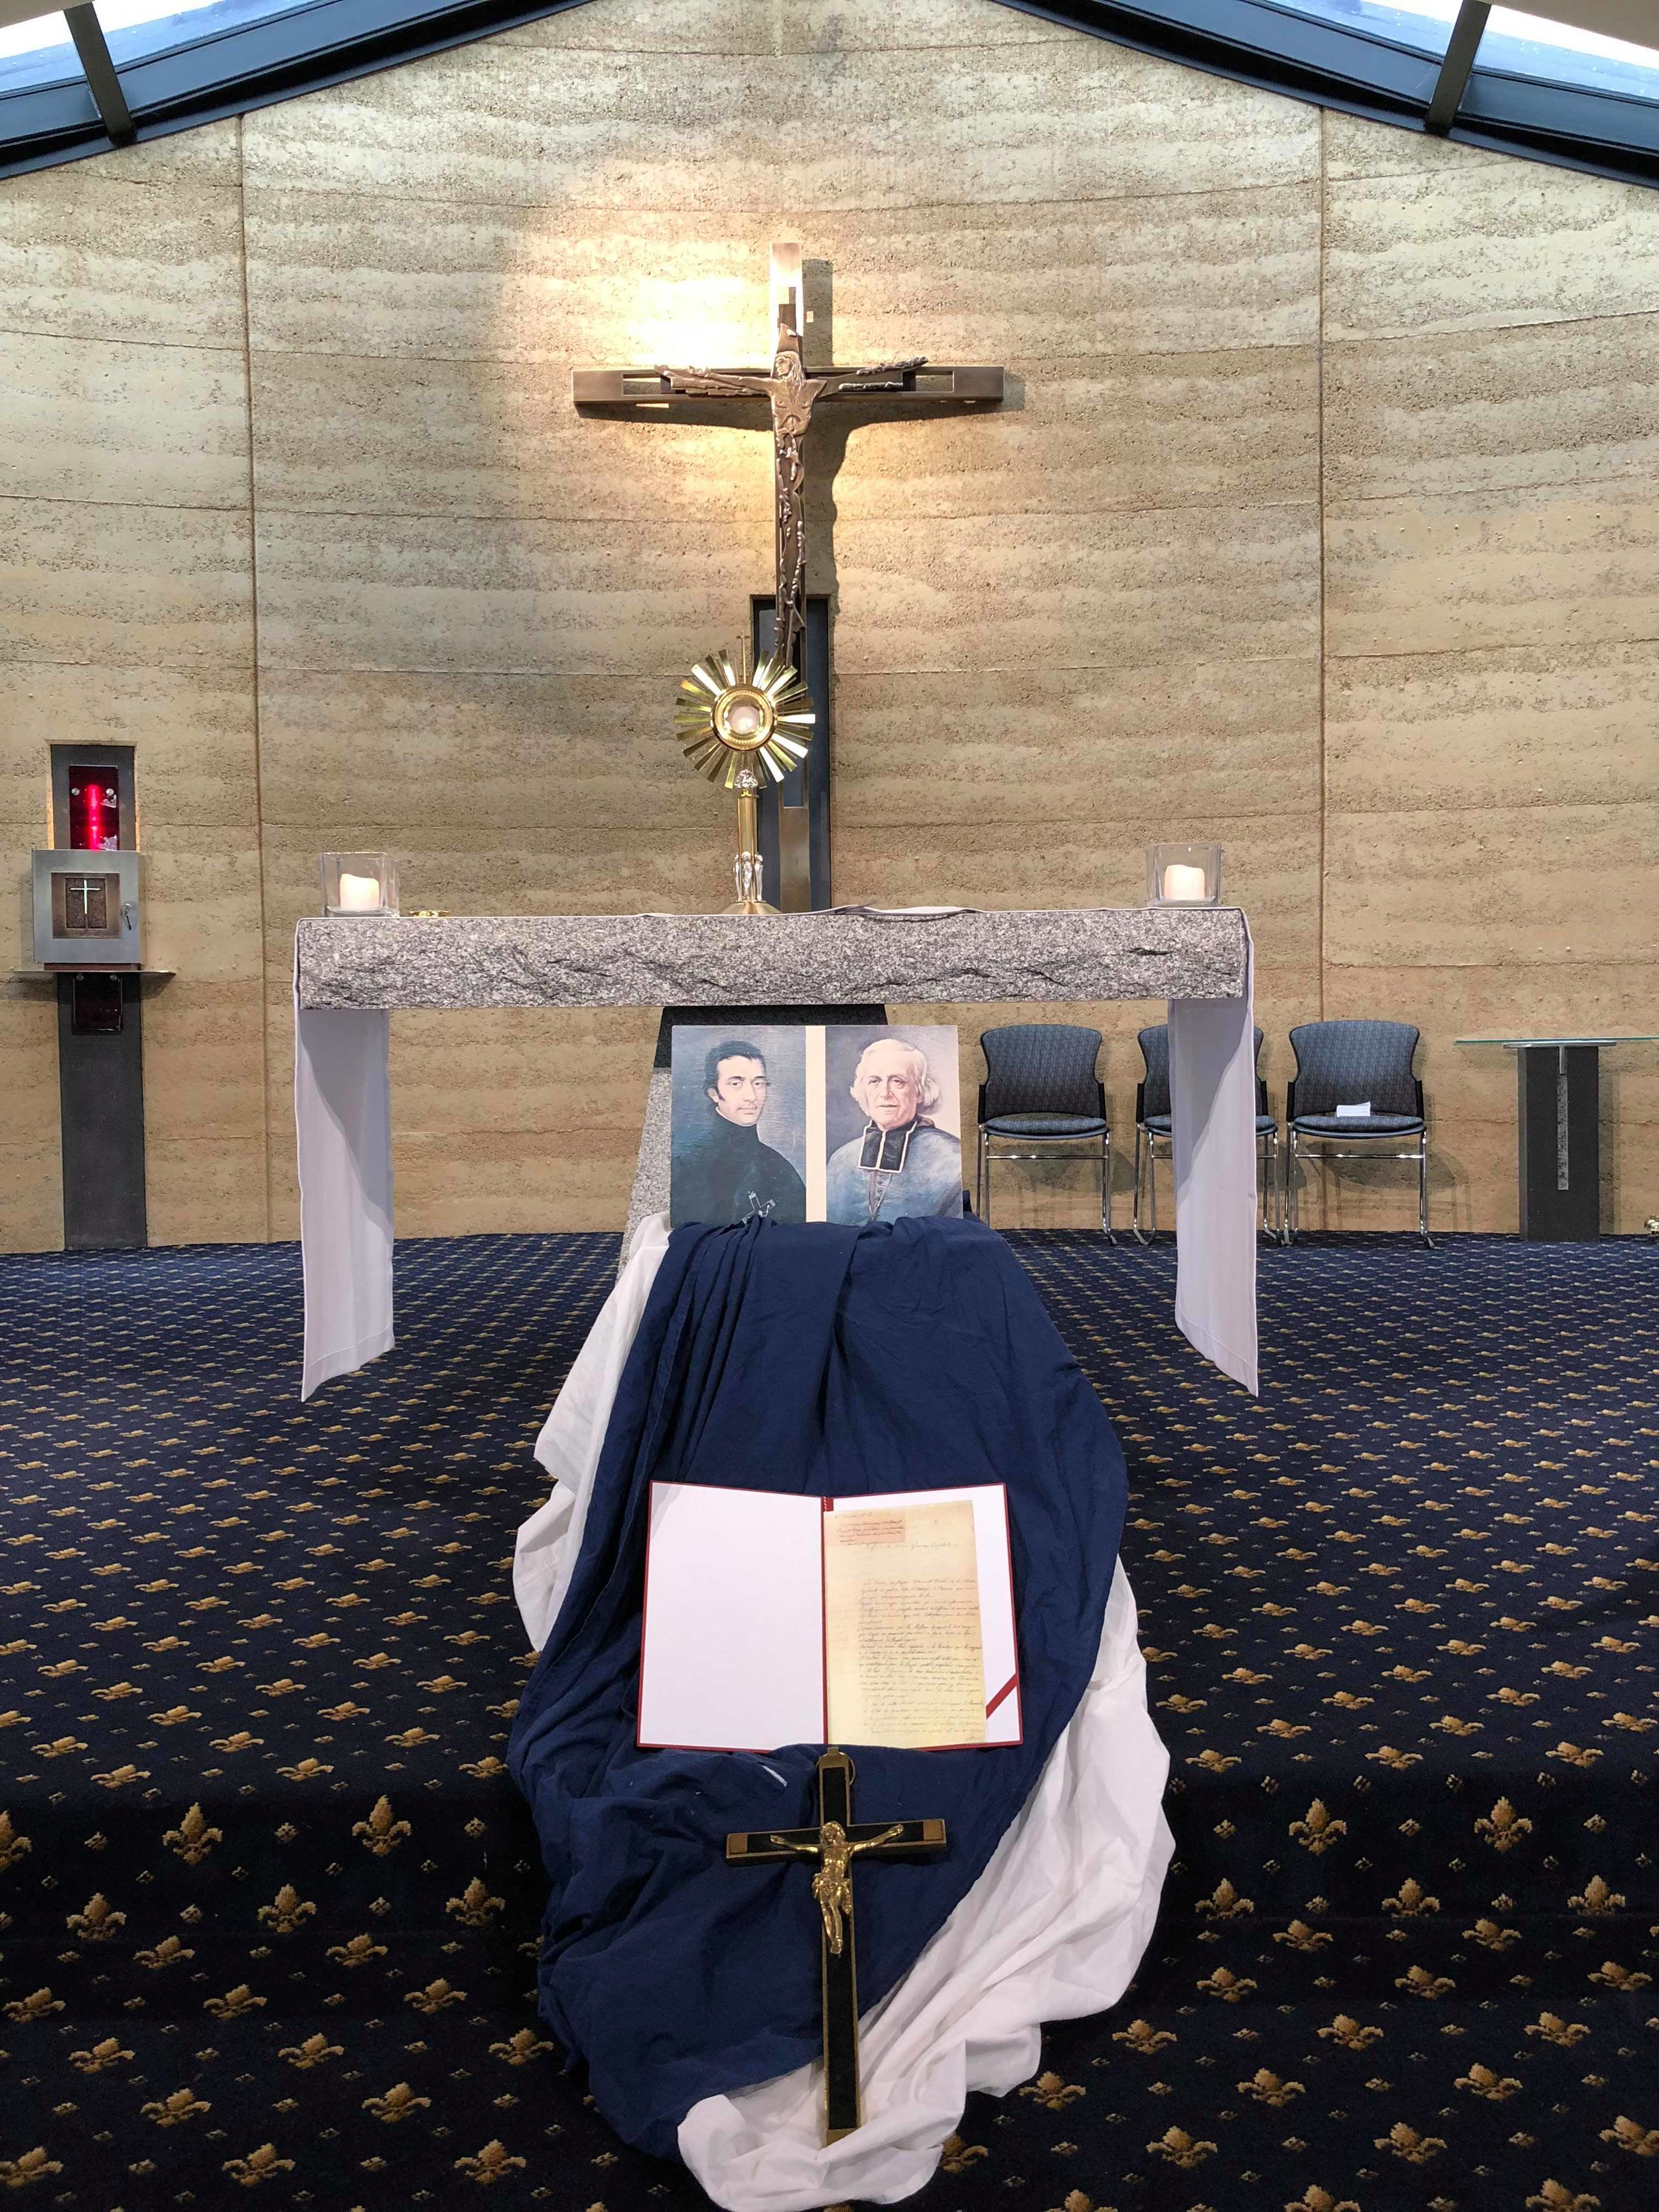 Chapel display at Mazenod College VIC